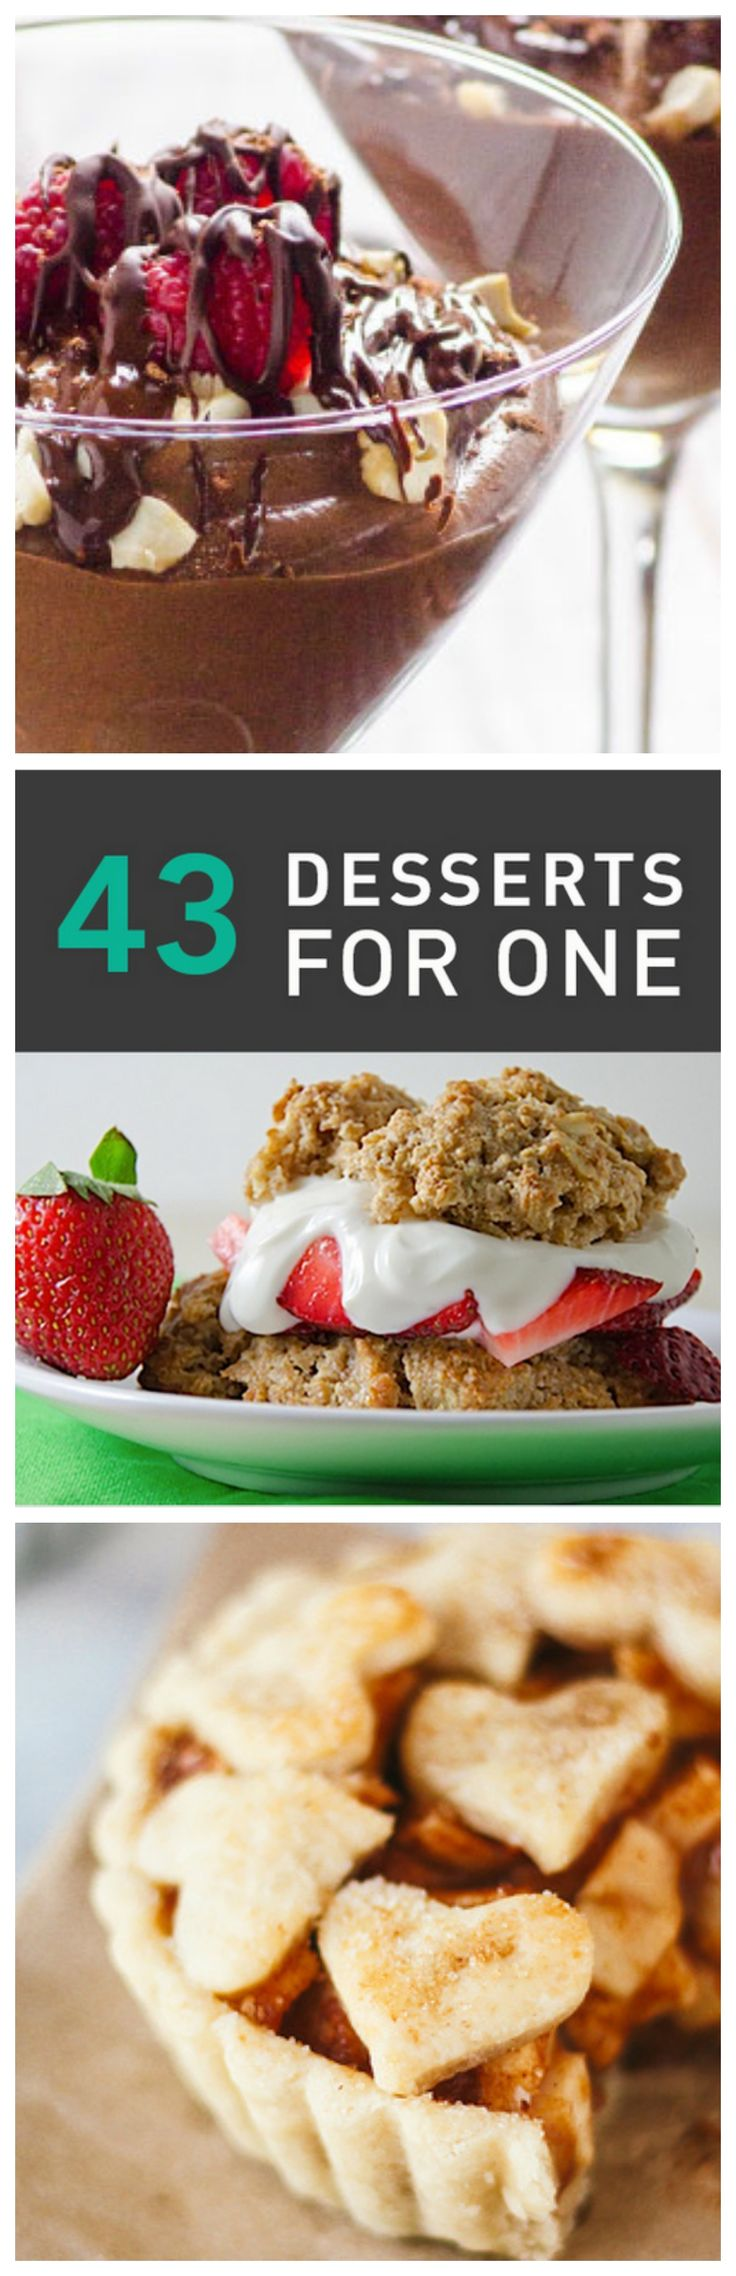 Cooking for One: 43 Ridiculously Delicious Single-Serving Dessert Recipes #dessert #recipes